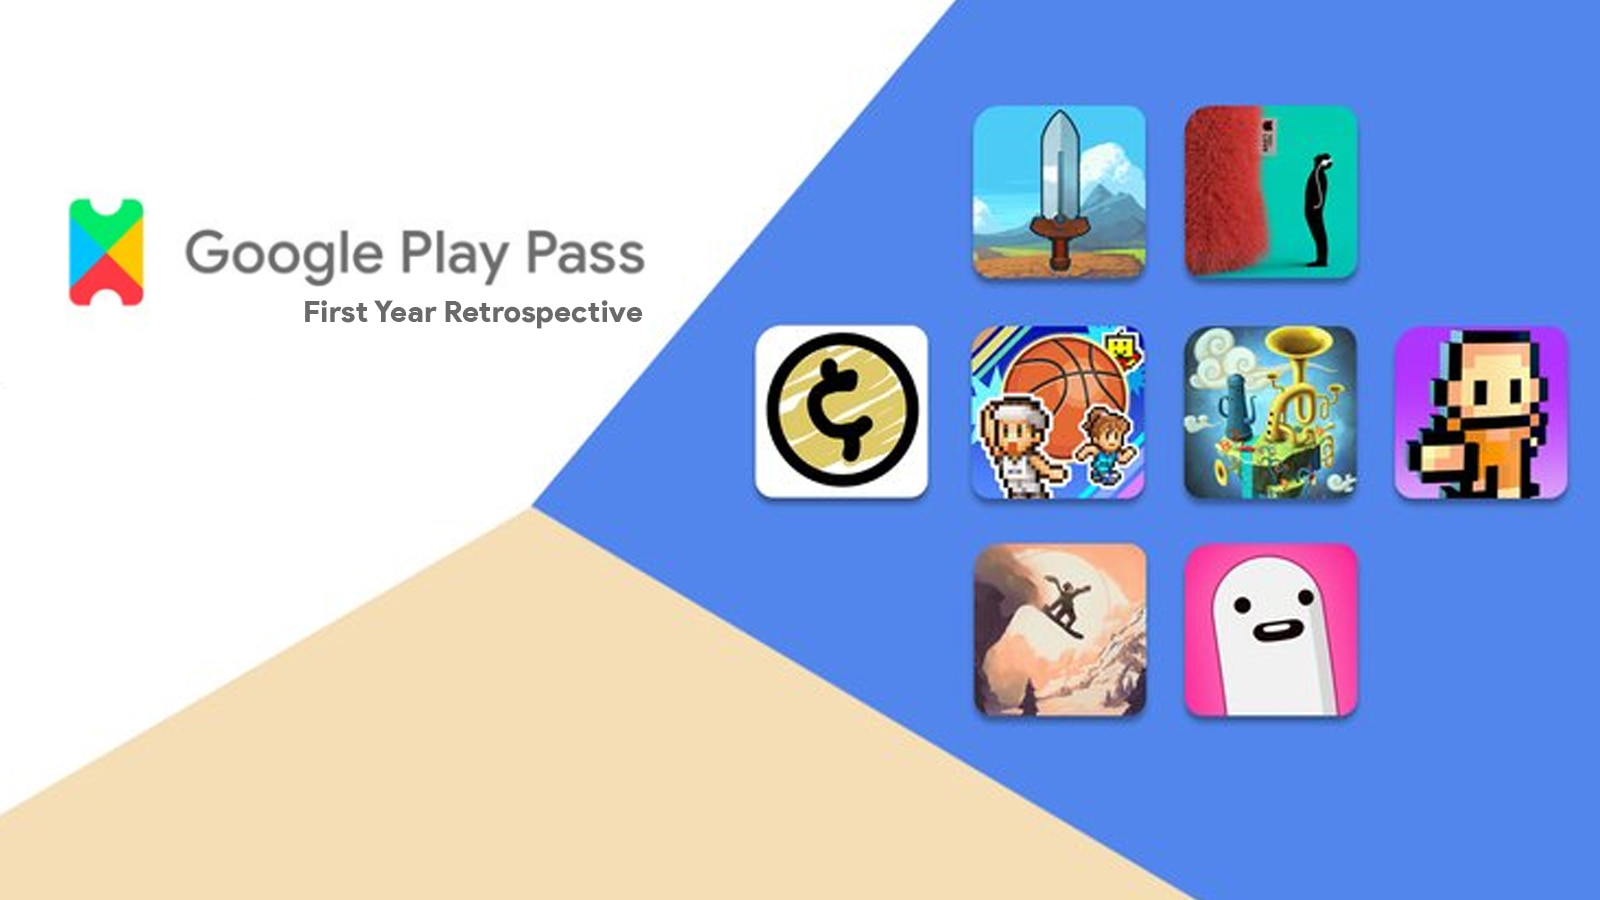 Google Play Pass had a great first year, but it still has room to grow